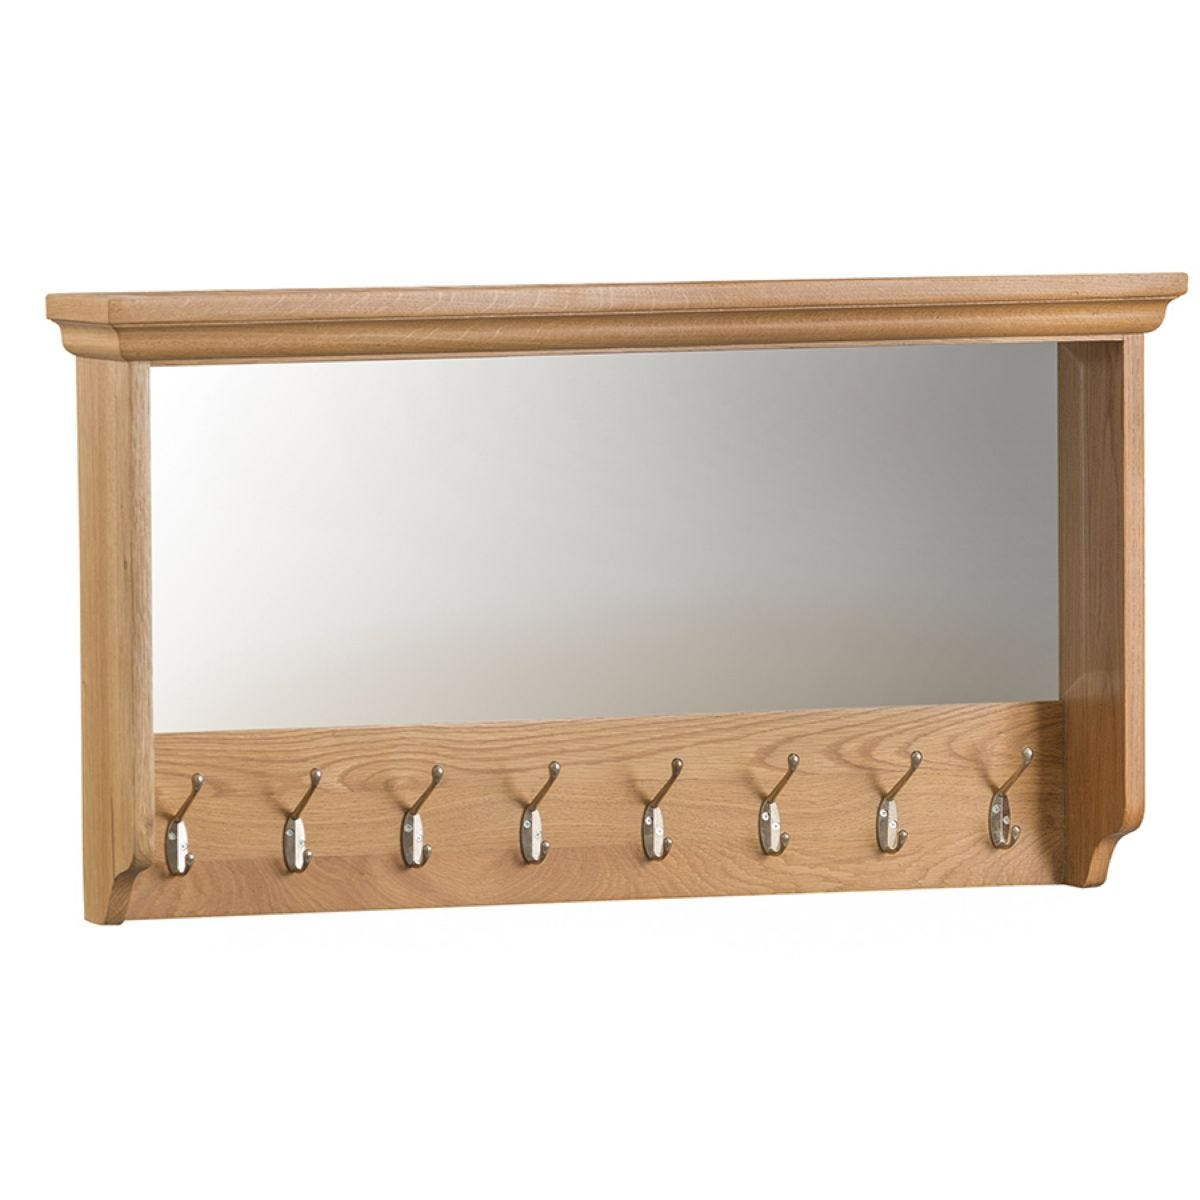 Hindsley Ready Assembled Hall Coat Hooks with Mirror